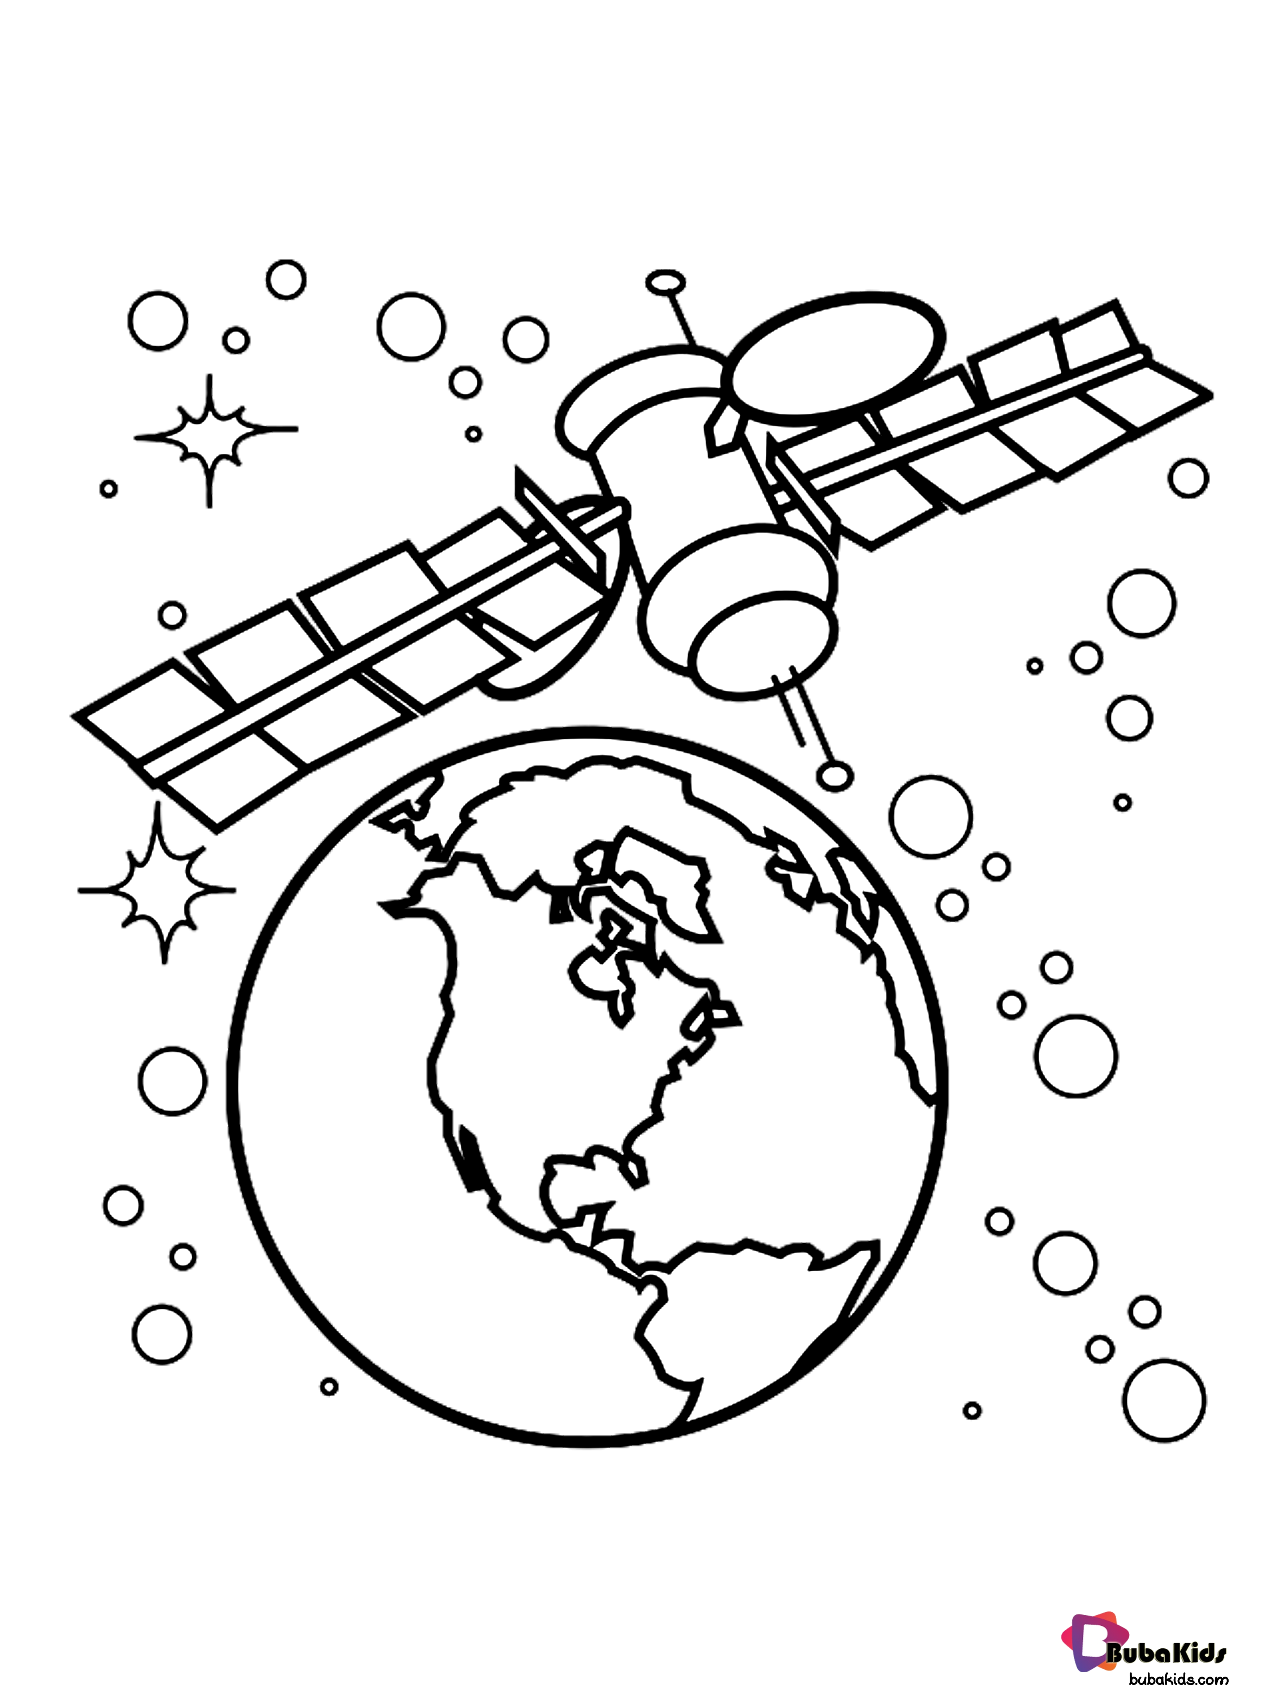 Outer Space Satellite Orbiting Earth Coloring Page In